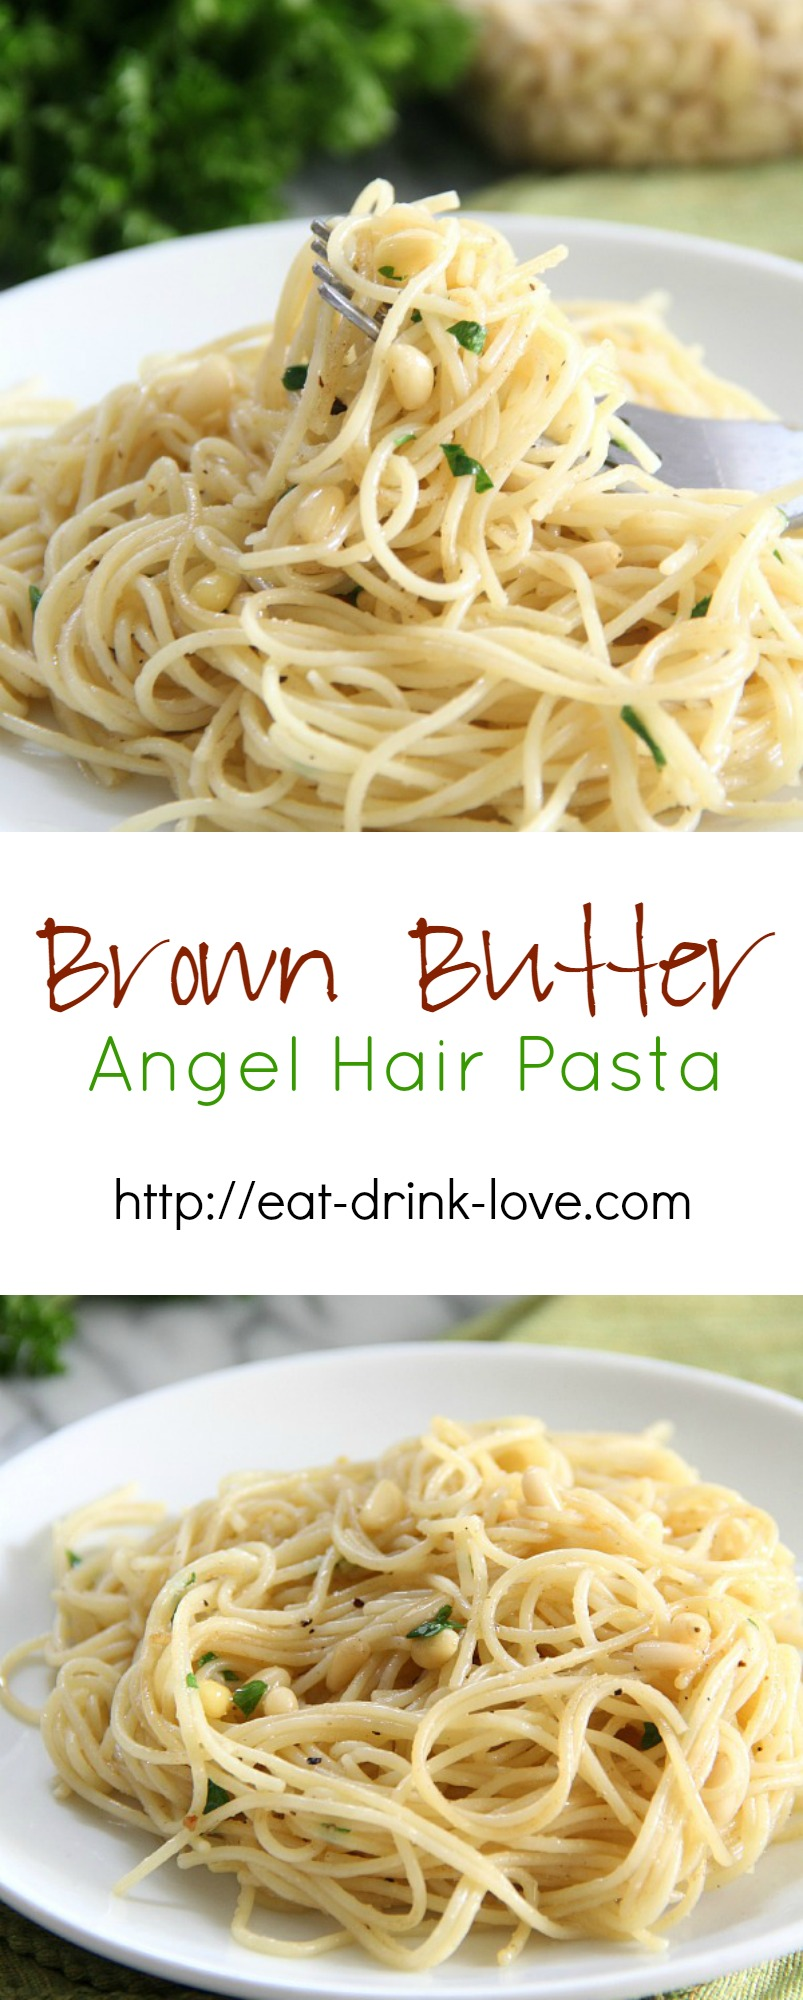 Browned Butter Angel Hair Pasta - angel hair pasta with parsley and pine nuts